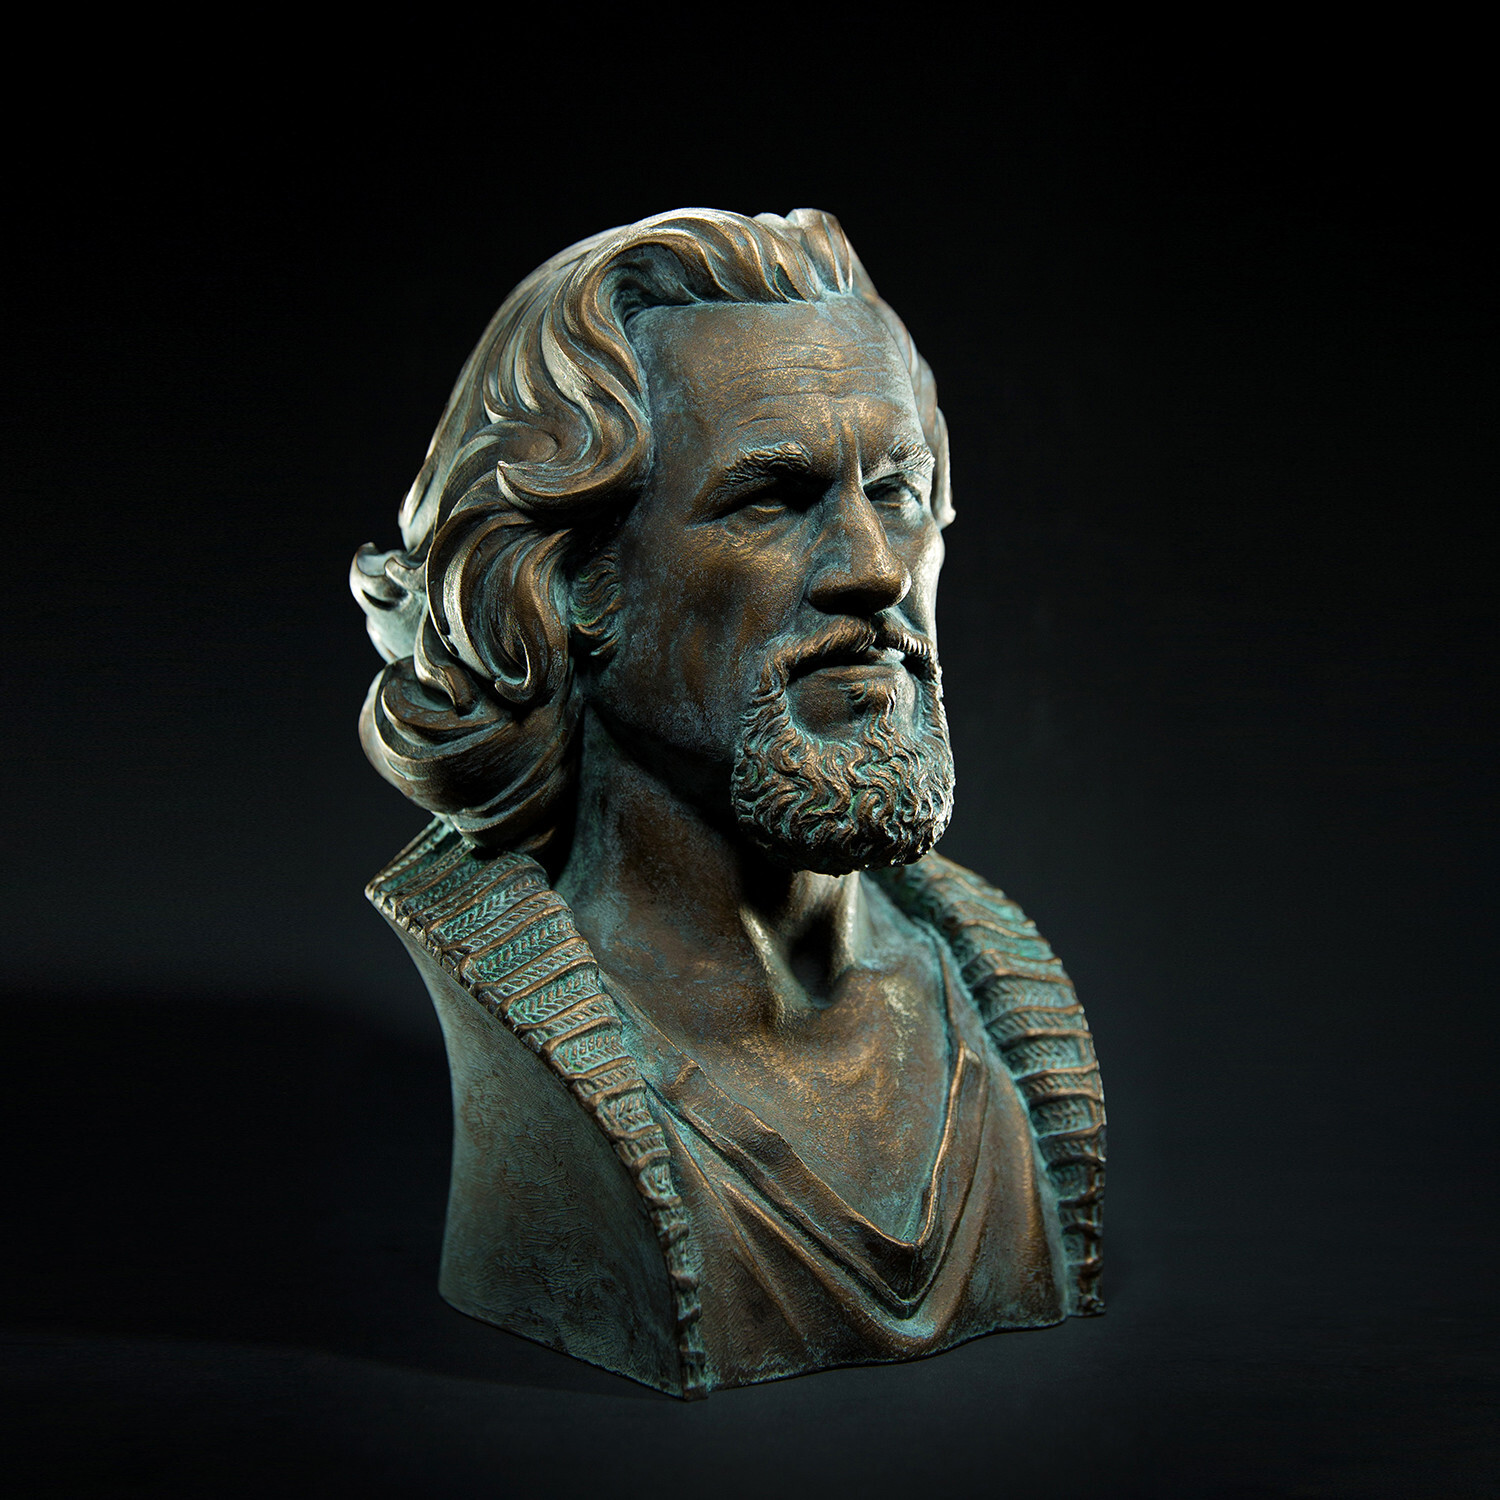 material reference for procedural shader